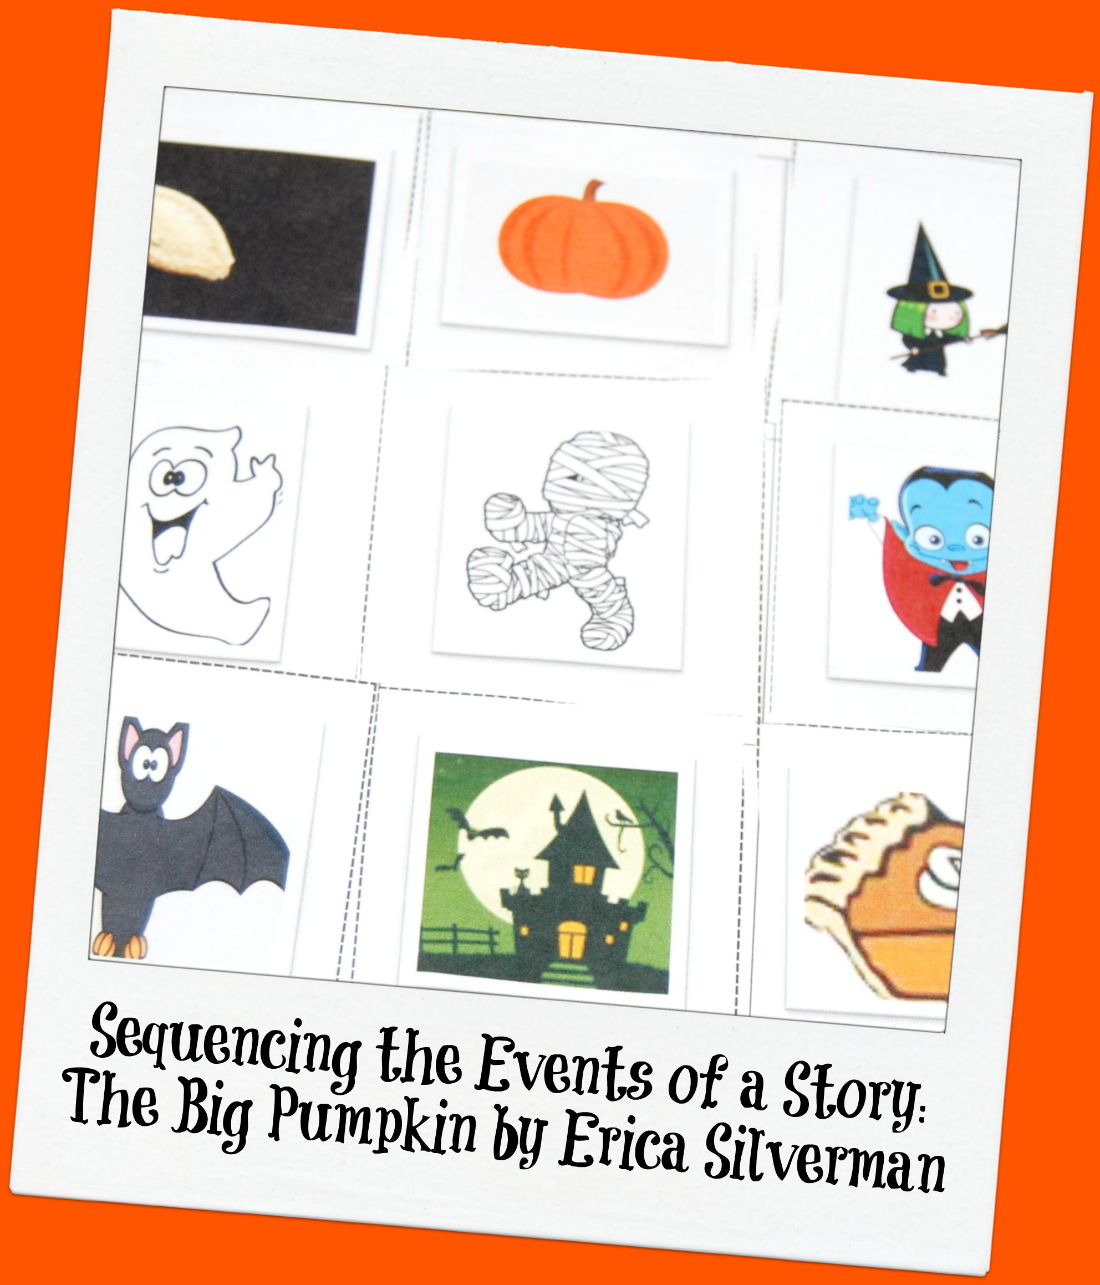 sequencing-cards-for-the-big-pumpkin-by-erica-silverman